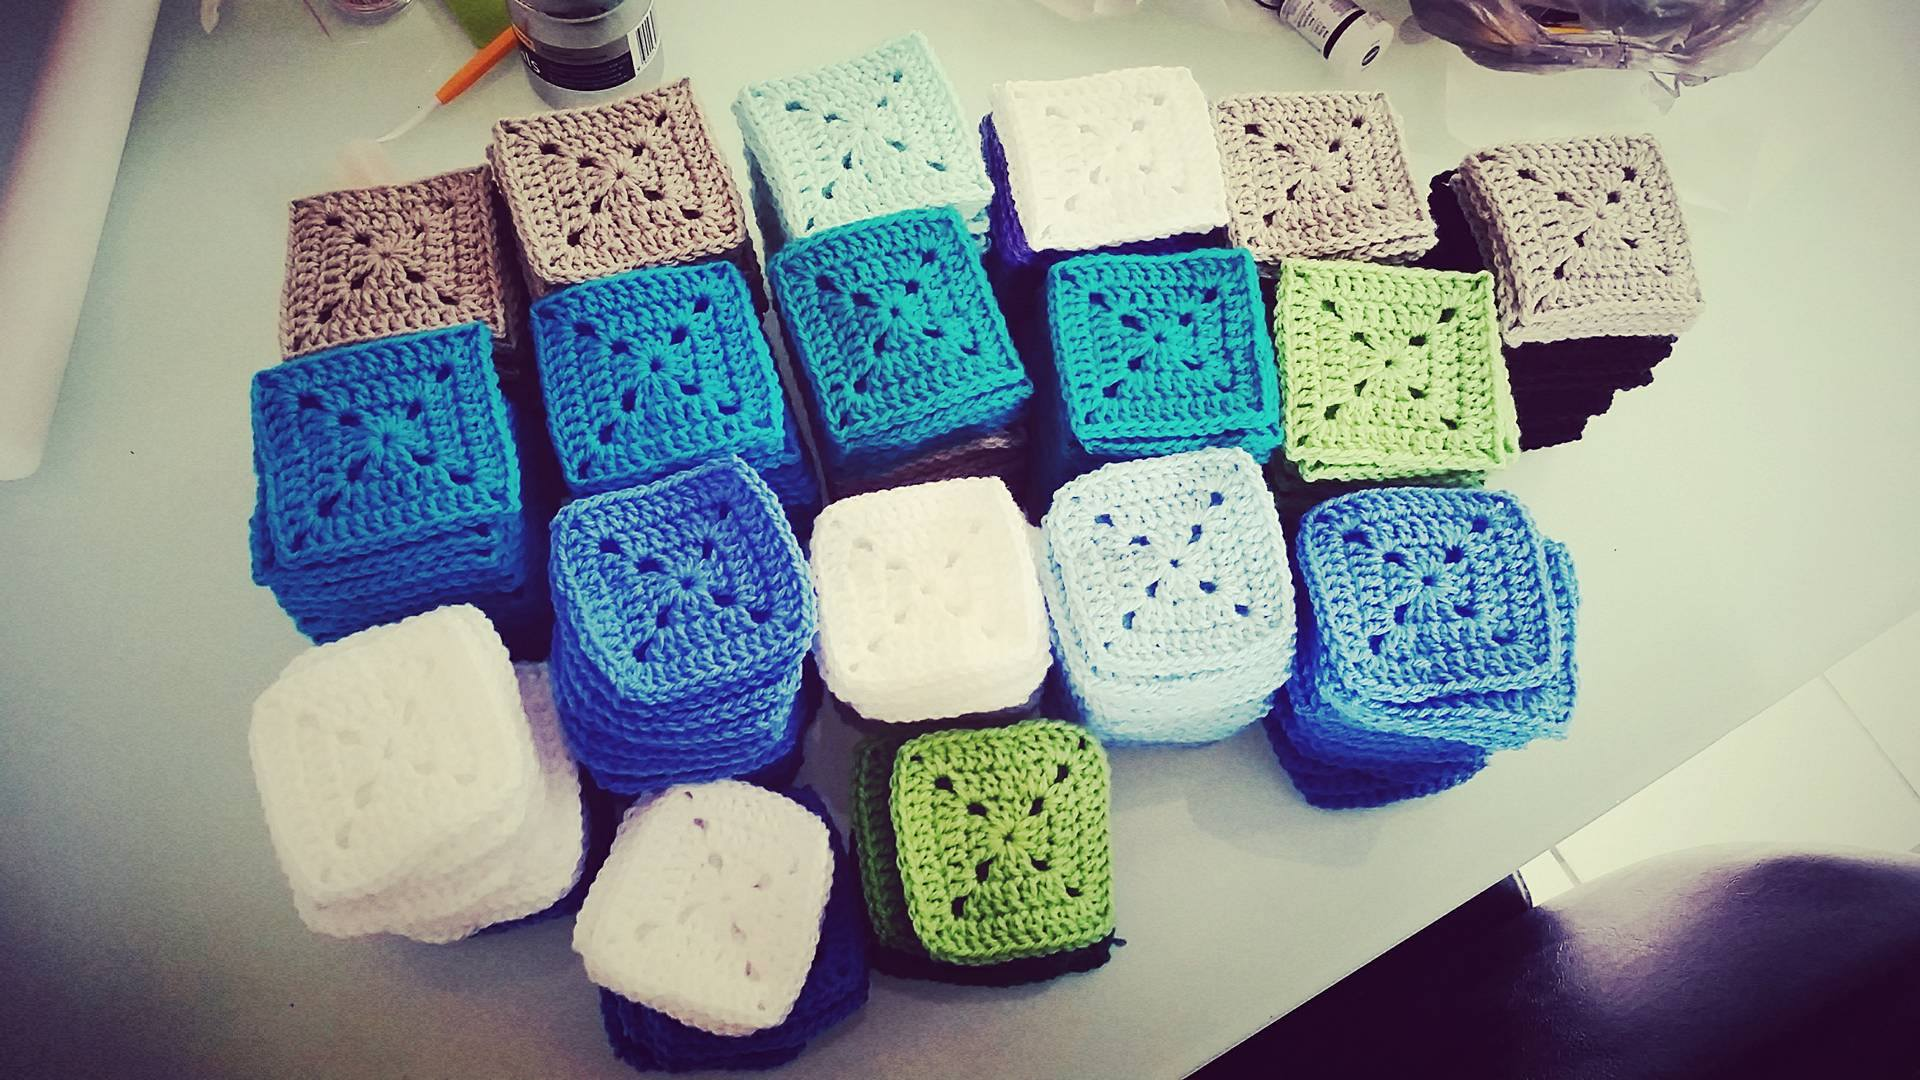 Minecraft Crochet Patterns: 15 Unofficial Projects to Bring ... | 1080x1920